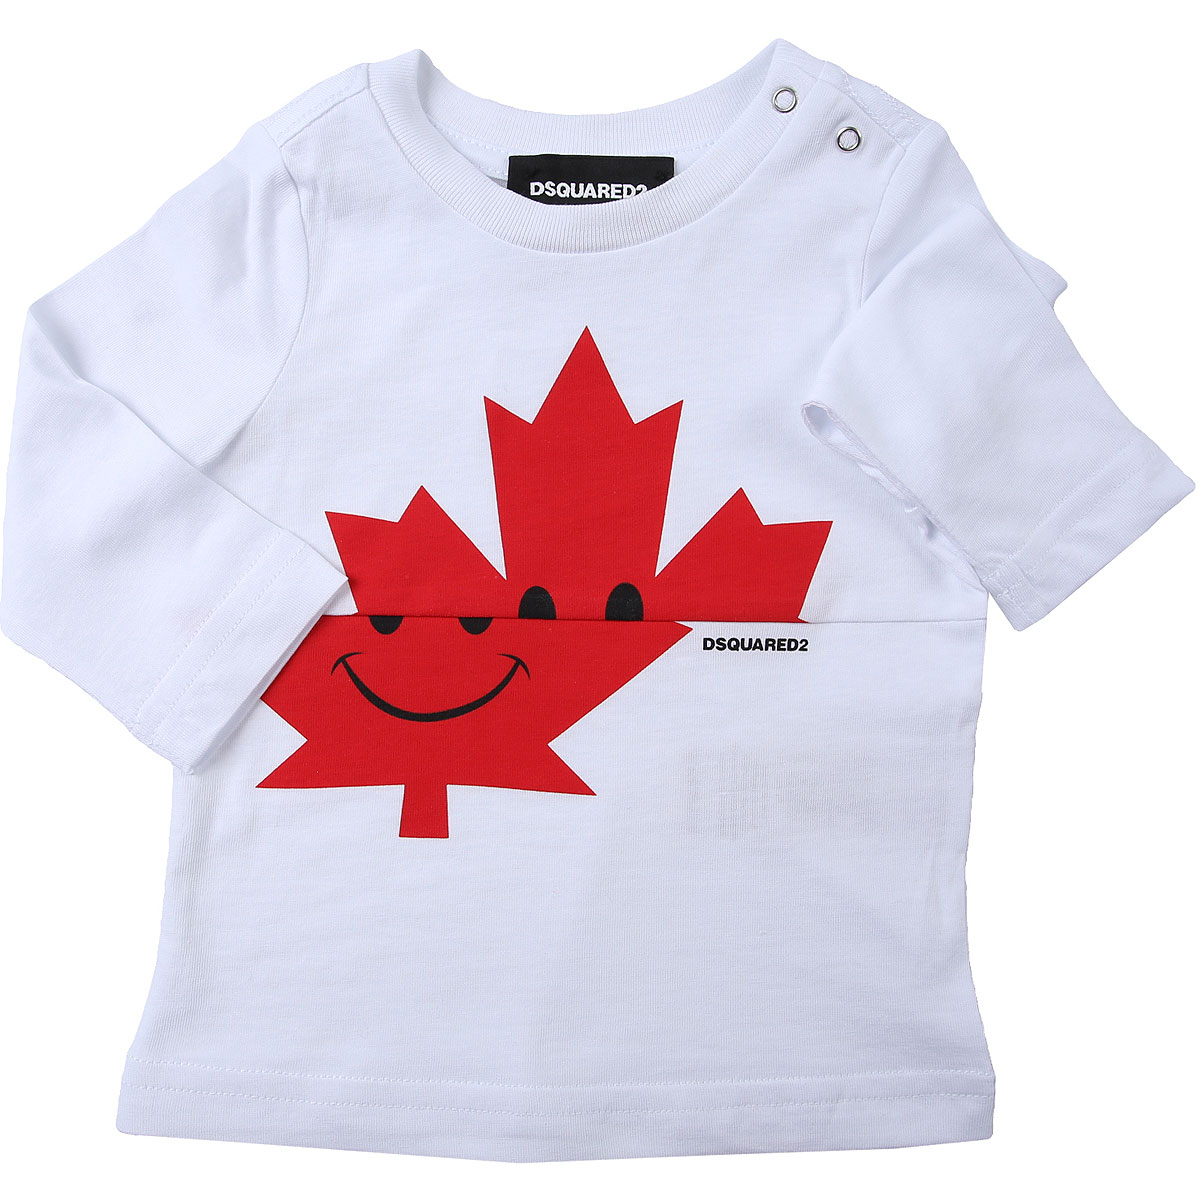 Dsquared2 Baby T-Shirt for Boys On Sale, White, Cotton, 2019, 12 M 18M 2Y 3M 3Y 6M 9M